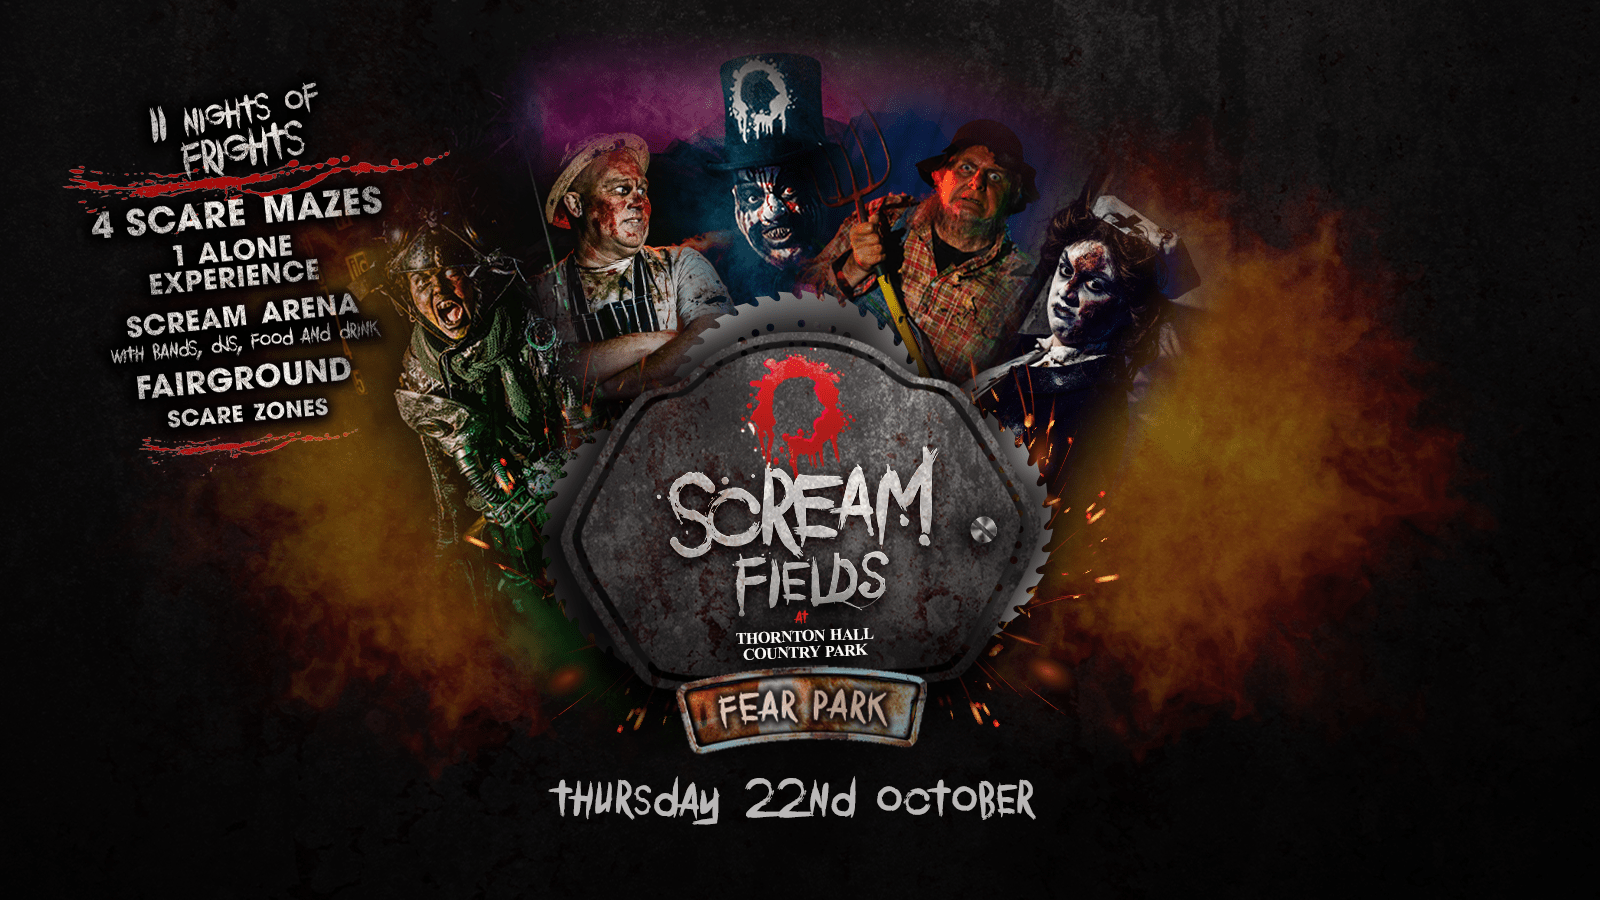 6.00PM – Screamfields: Thursday 22nd October 2020